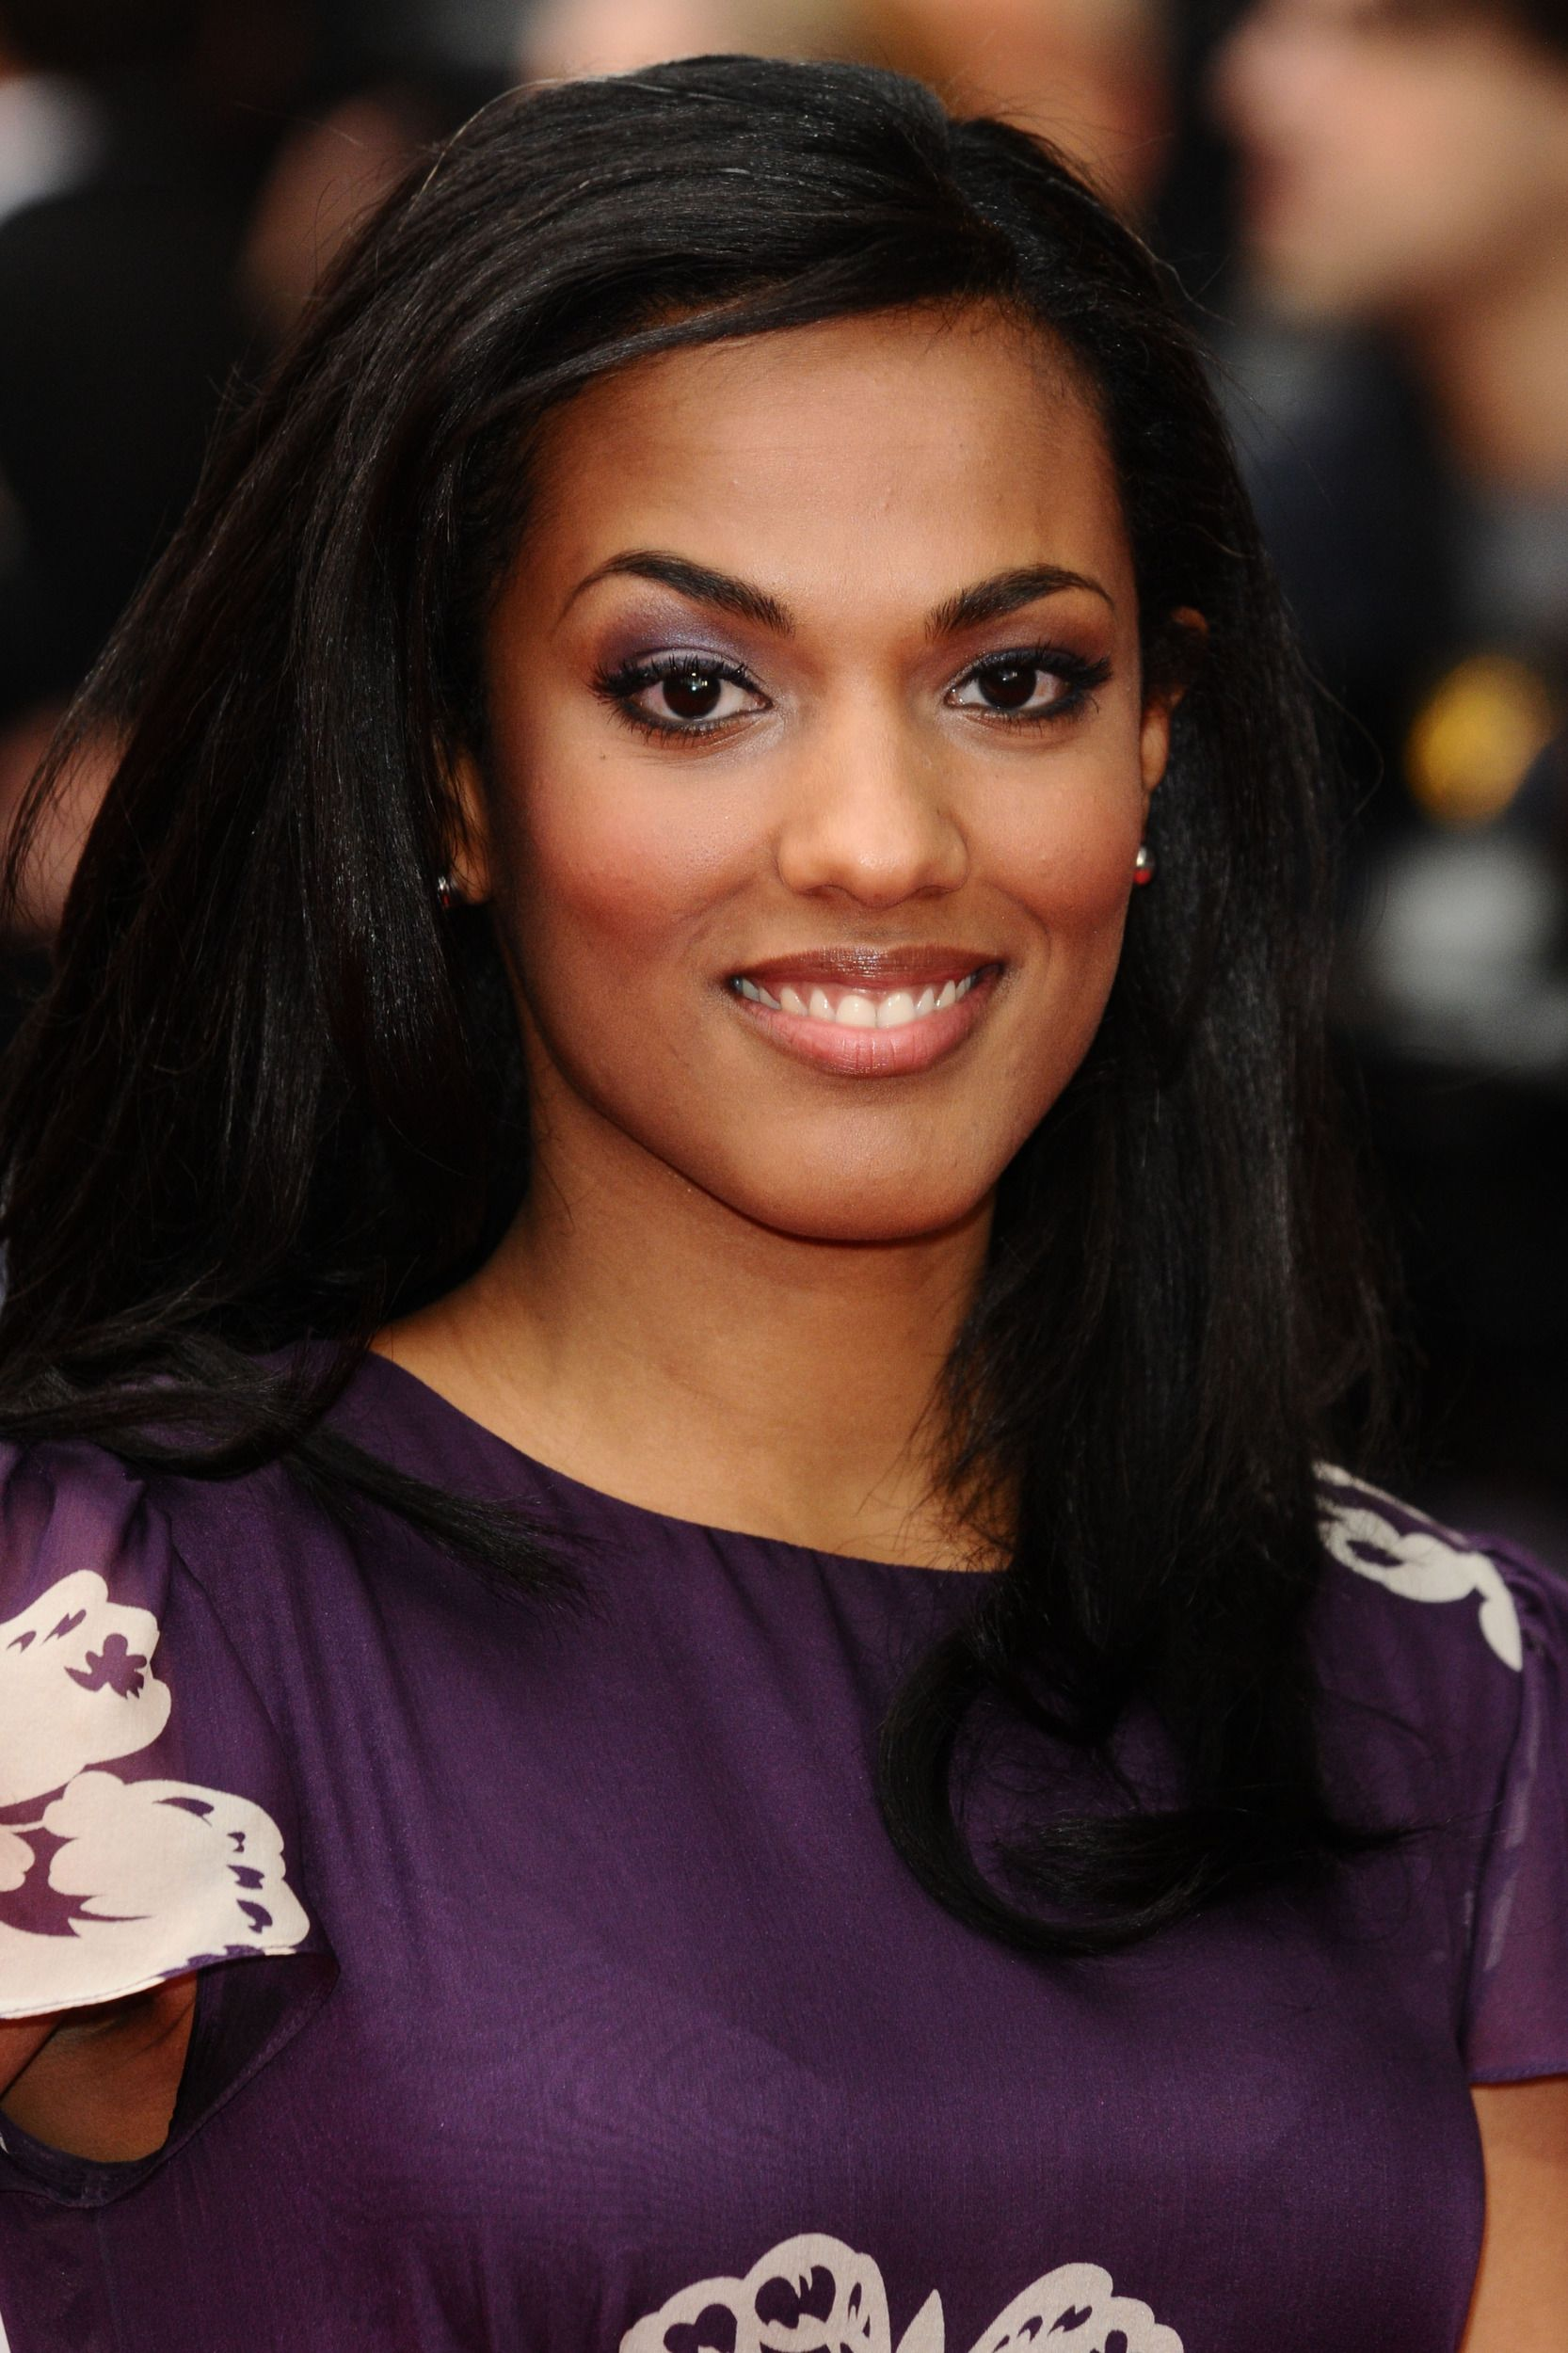 freema agyeman star wars